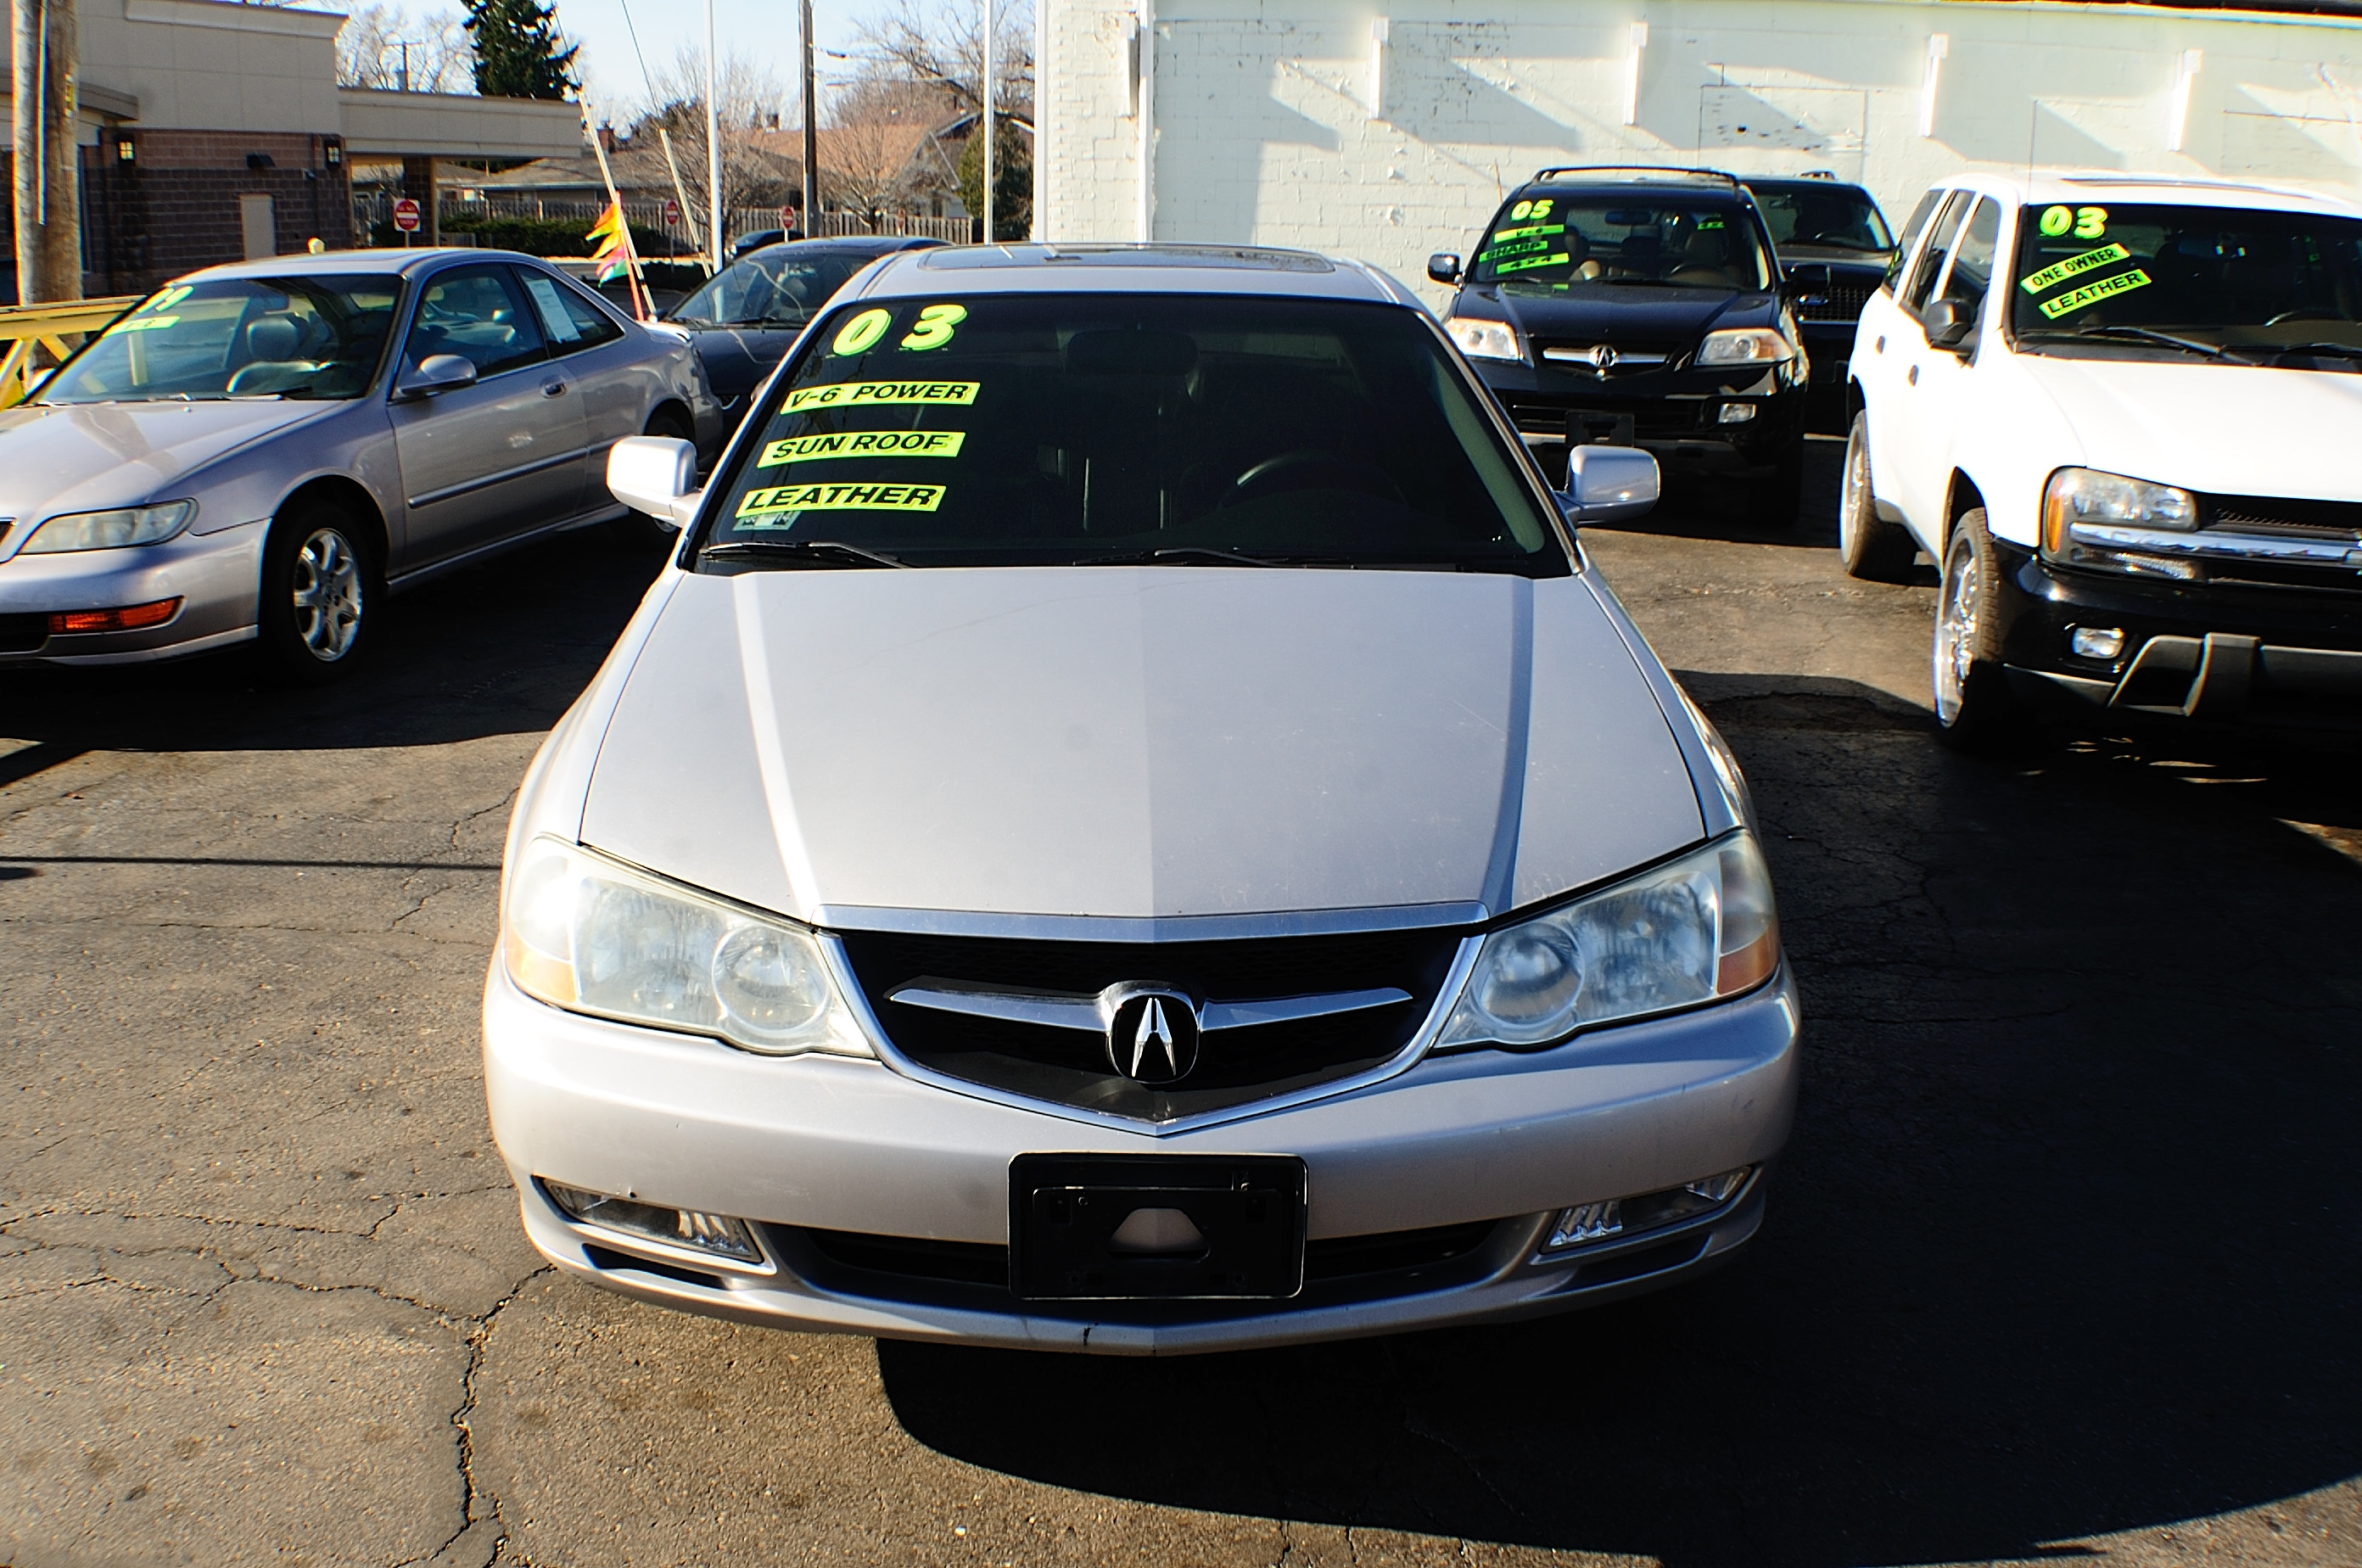 2003 Acura TL 4Dr Silver Sedan Used Car Sale Kenosha Mchenry Bannockburn Barrington